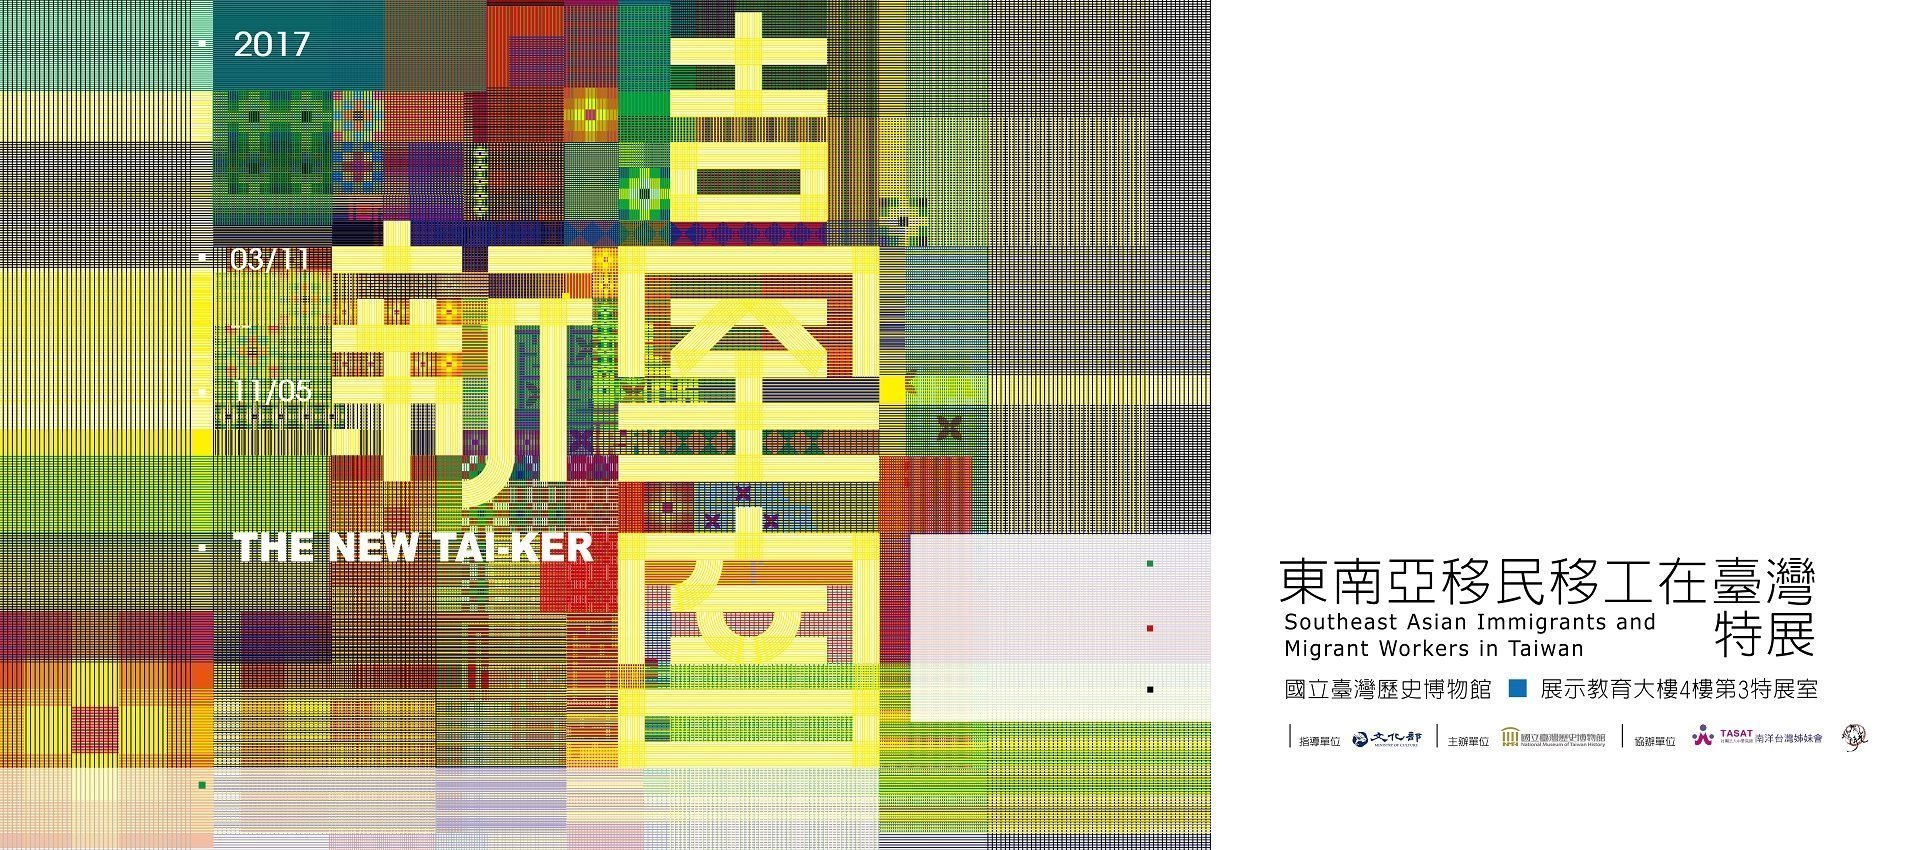 The New Tai-ker: Southeast Asian Migrant Workers and Immigrants in Taiwan